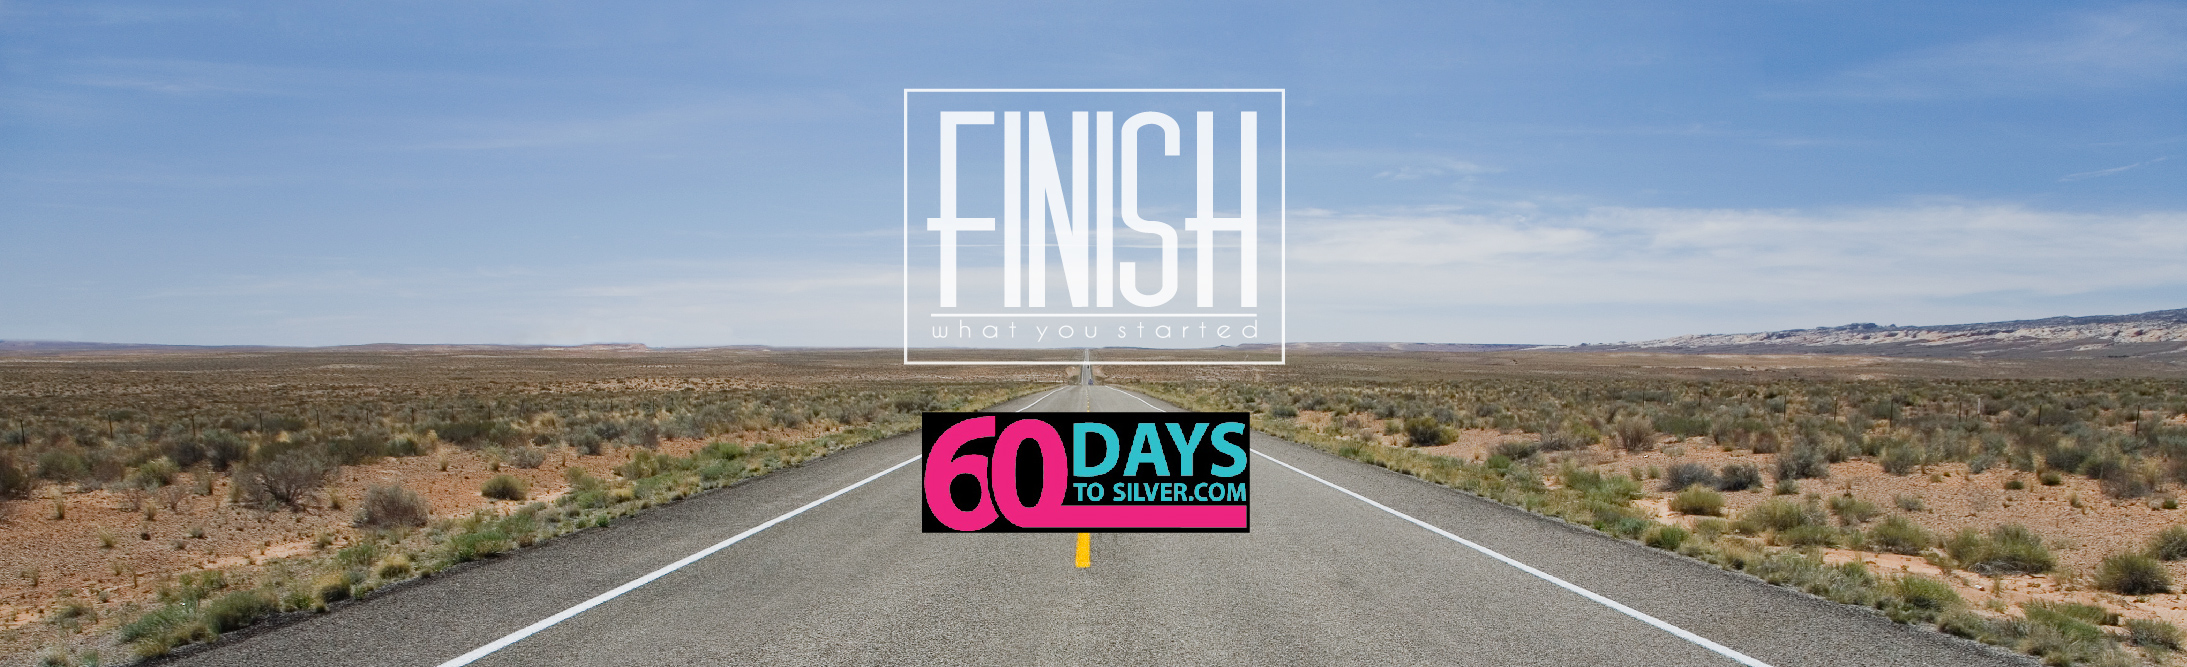 60 Days to Silver